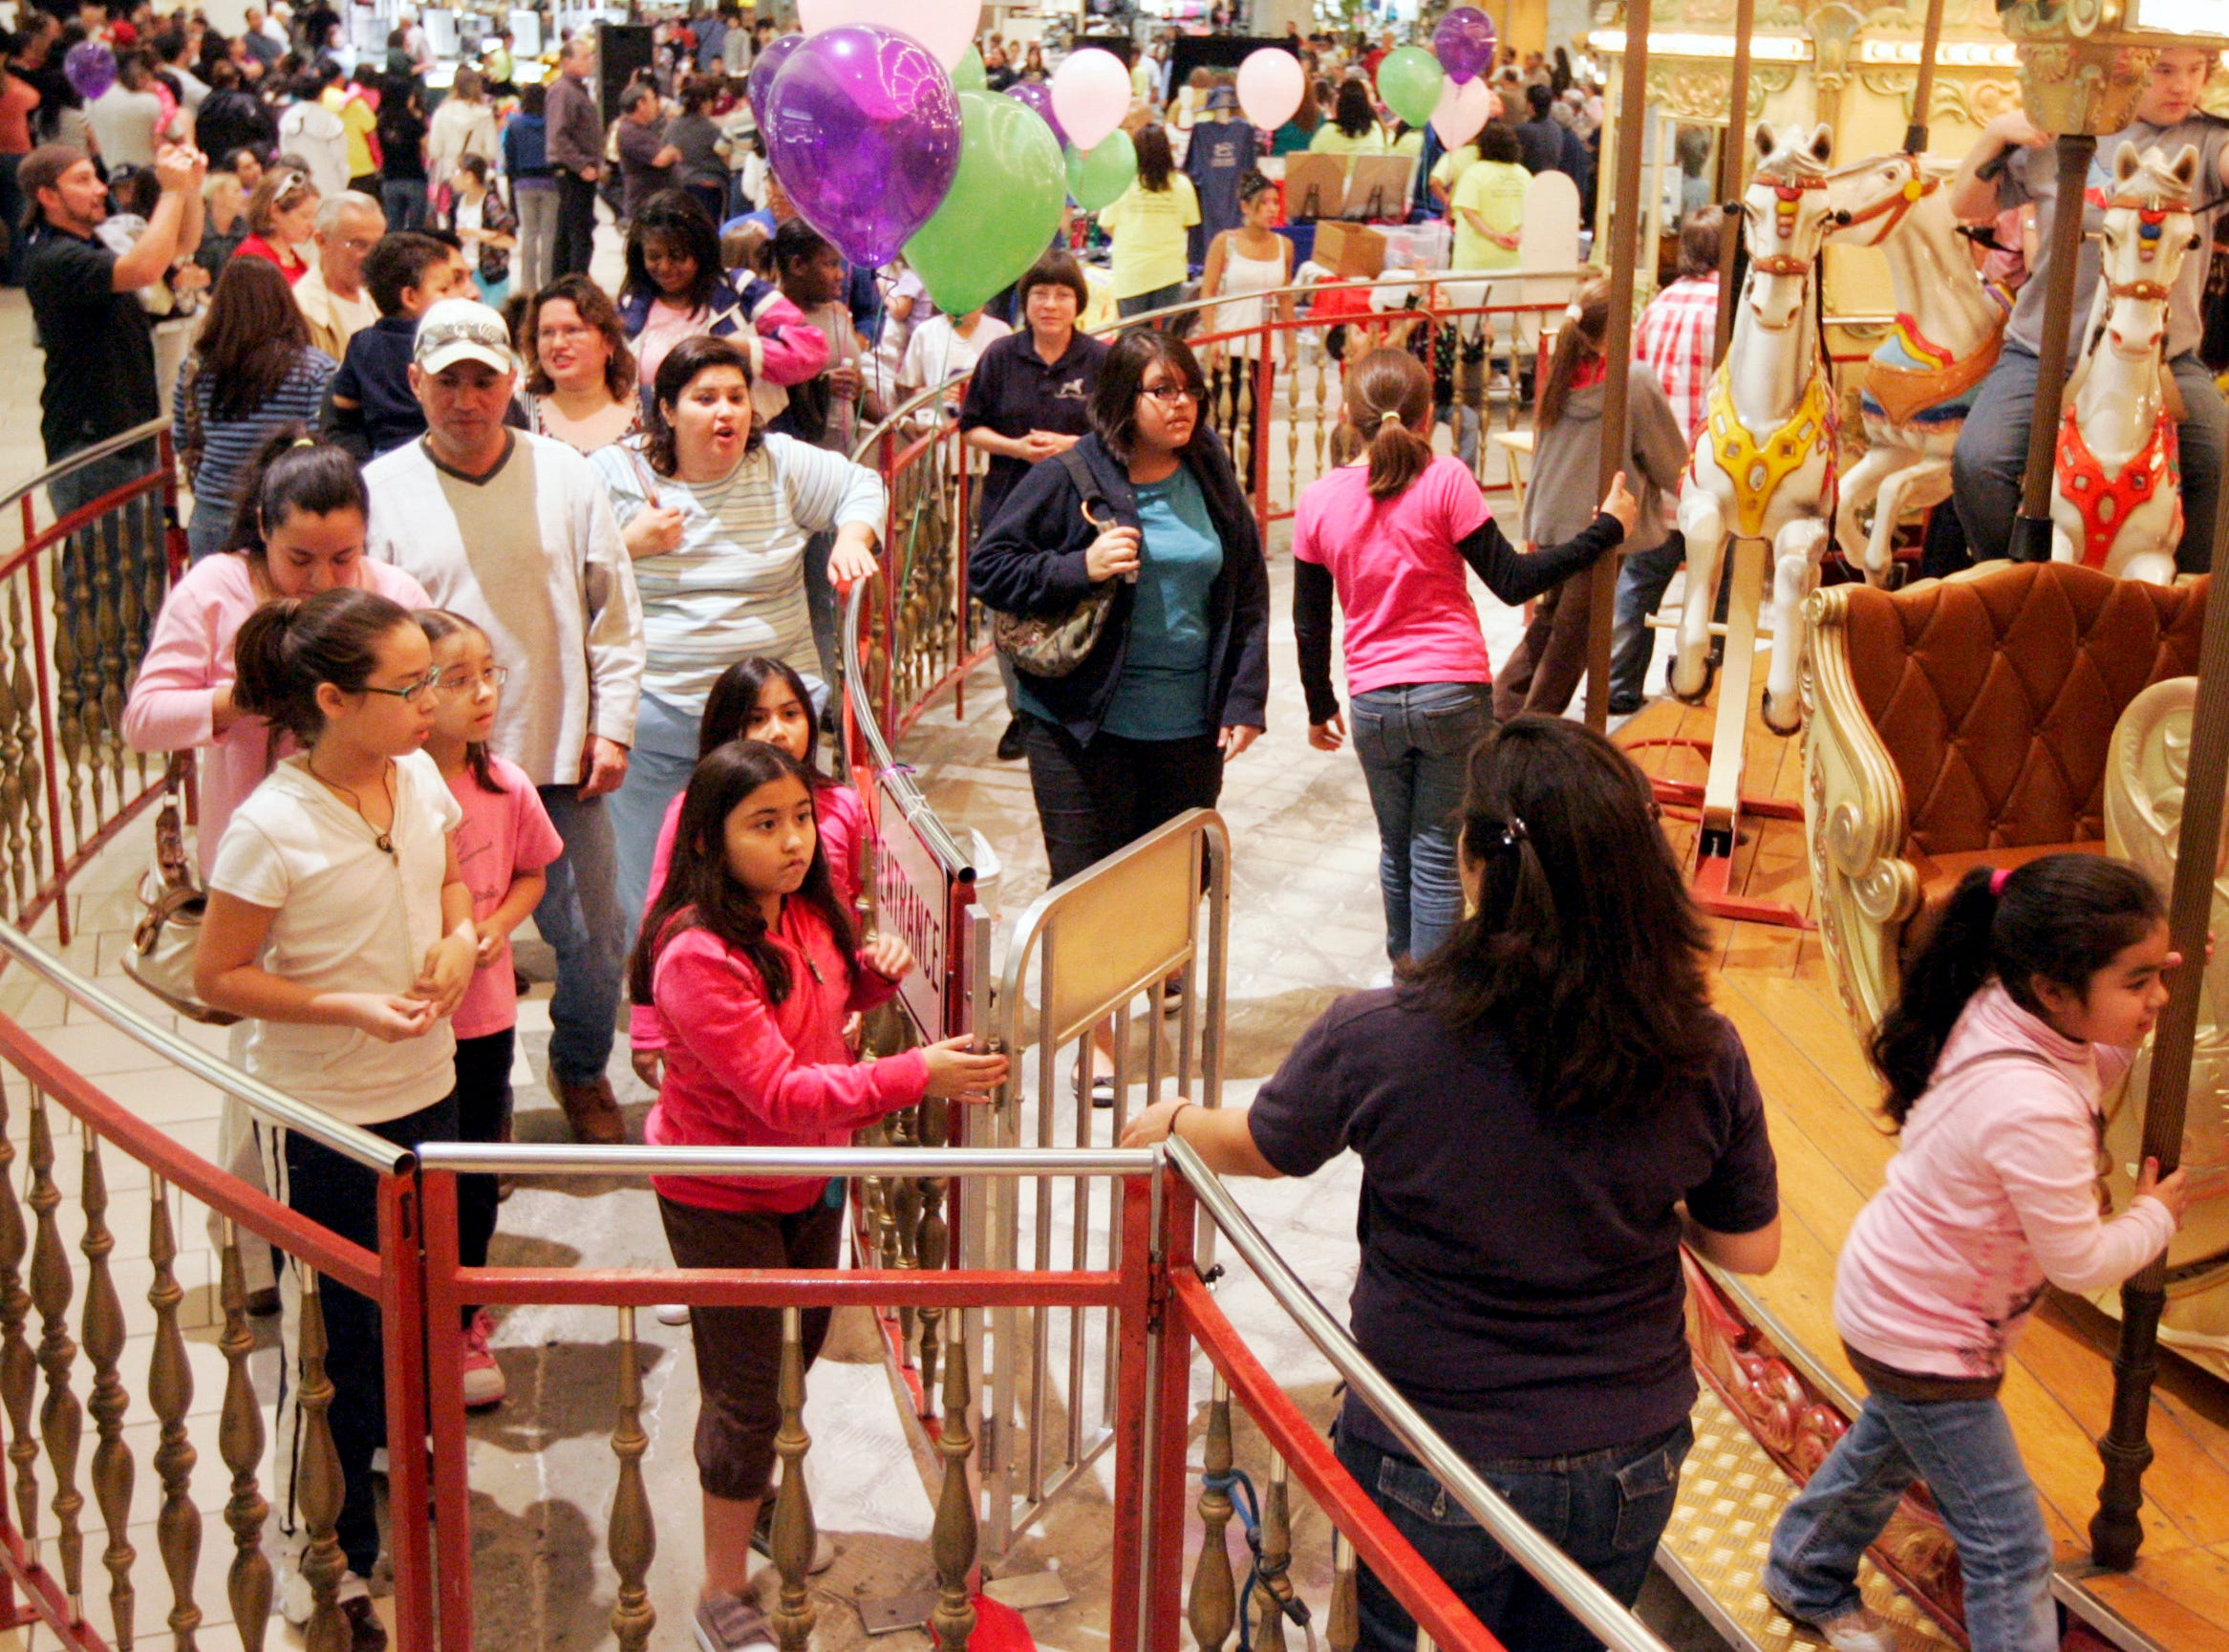 Carousel manager Irene Saldana takes tickets as a line of people wait to take a ride Saturday, Jan. 31, 2009 at La Palmera in Corpus Christi. The last day of carousel operation plus a separate event in the mall courtyard brought a steady flow of shoppers to the attraction.